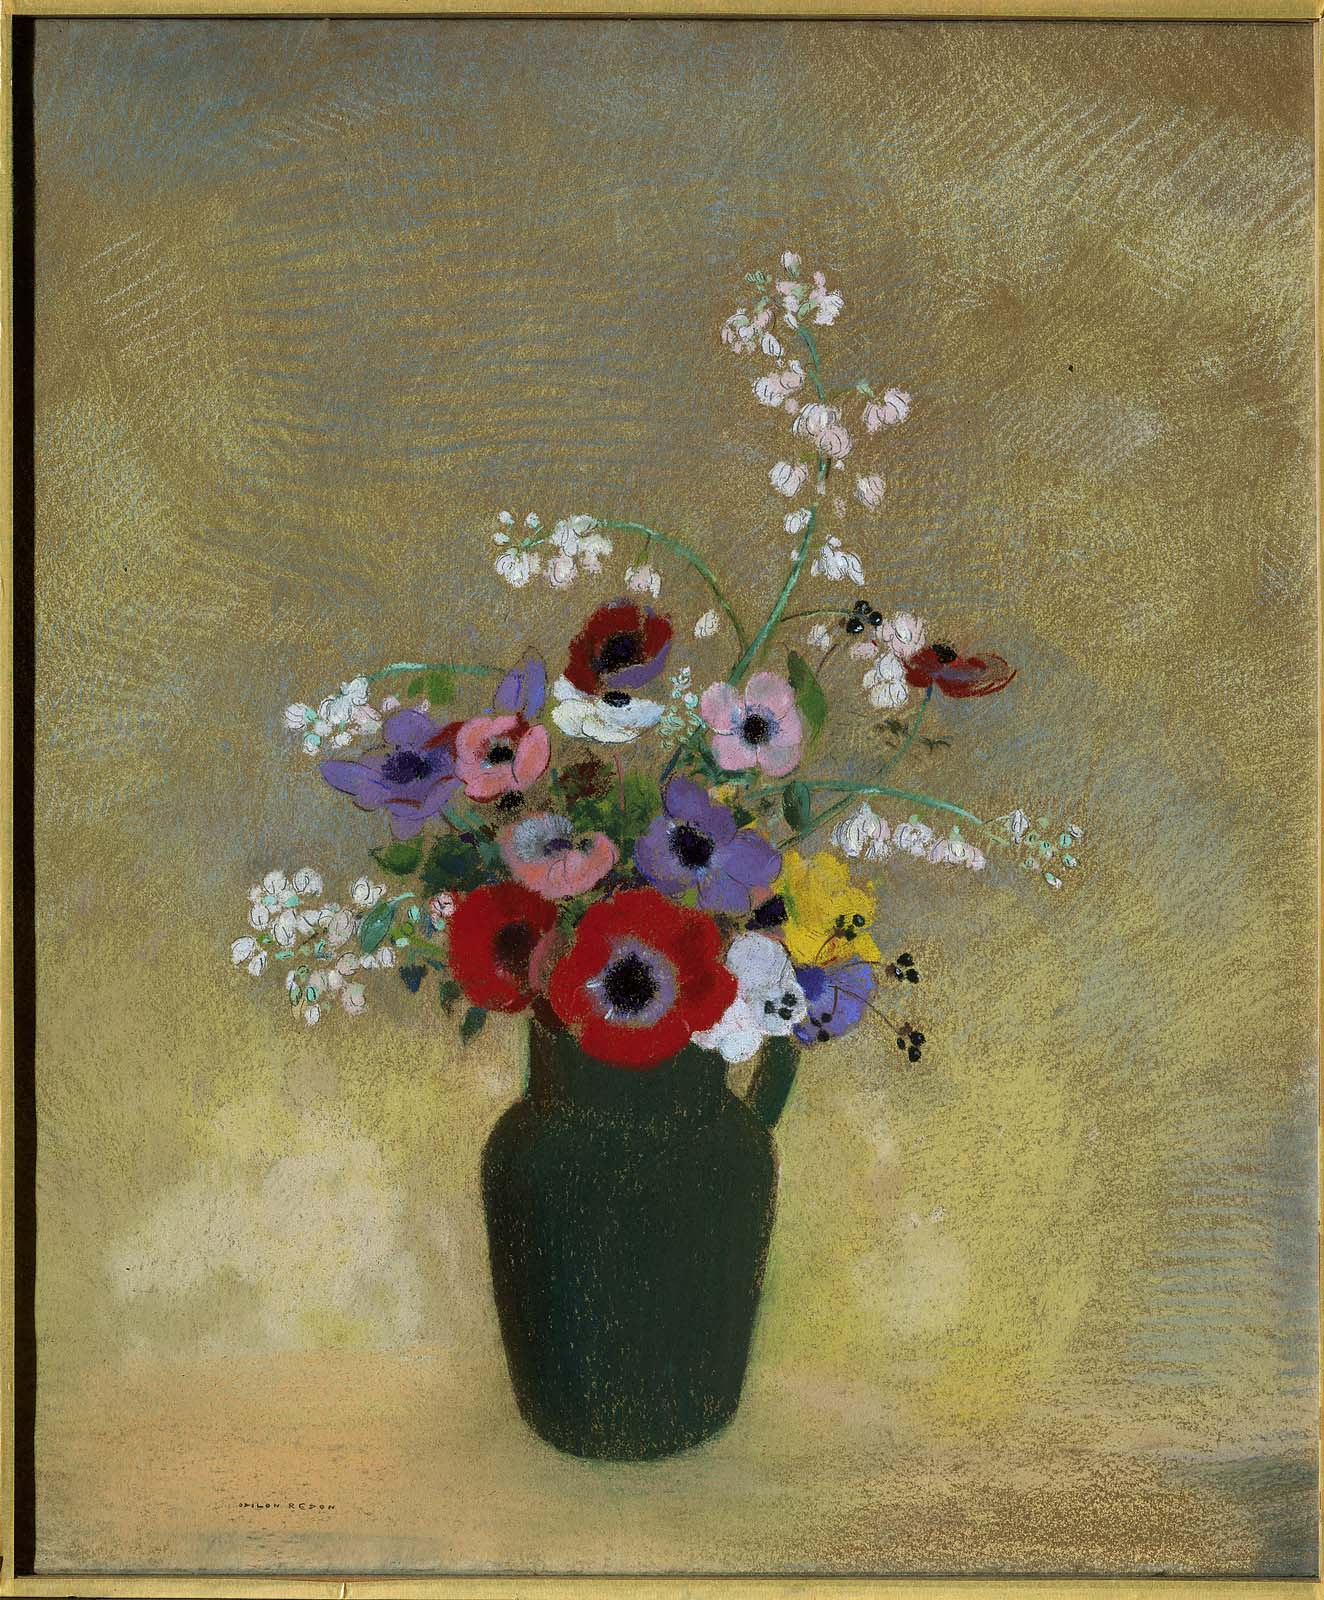 MFA Images: Bouquets